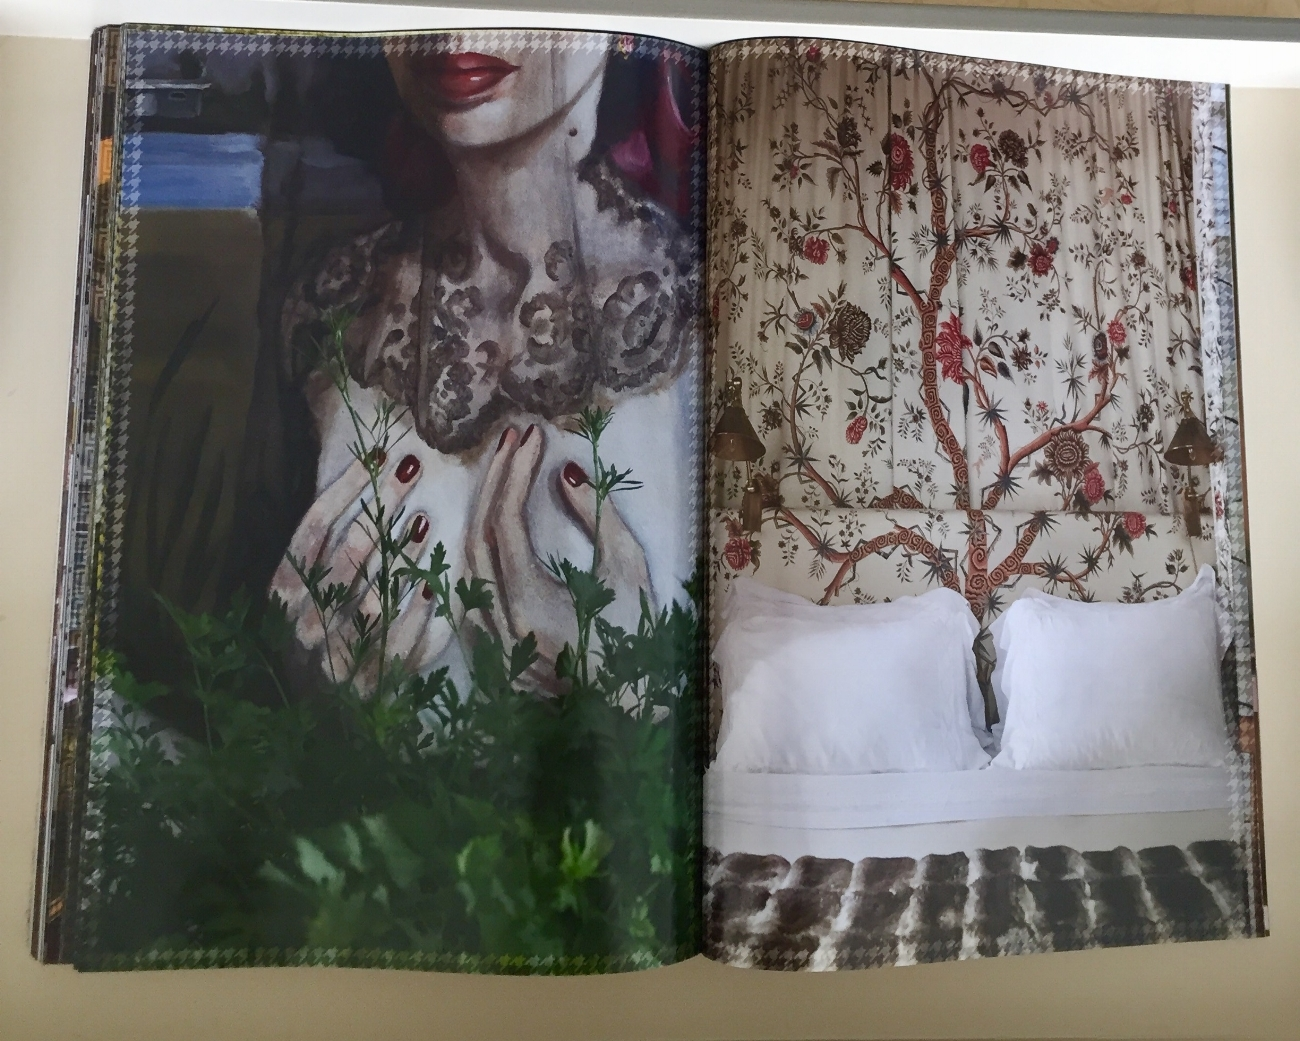 Pierre Frey's Tree of Life fabric is the canopy framing Romualdez's bed and shares the page with an intriguing portrait - I wonder who she is??